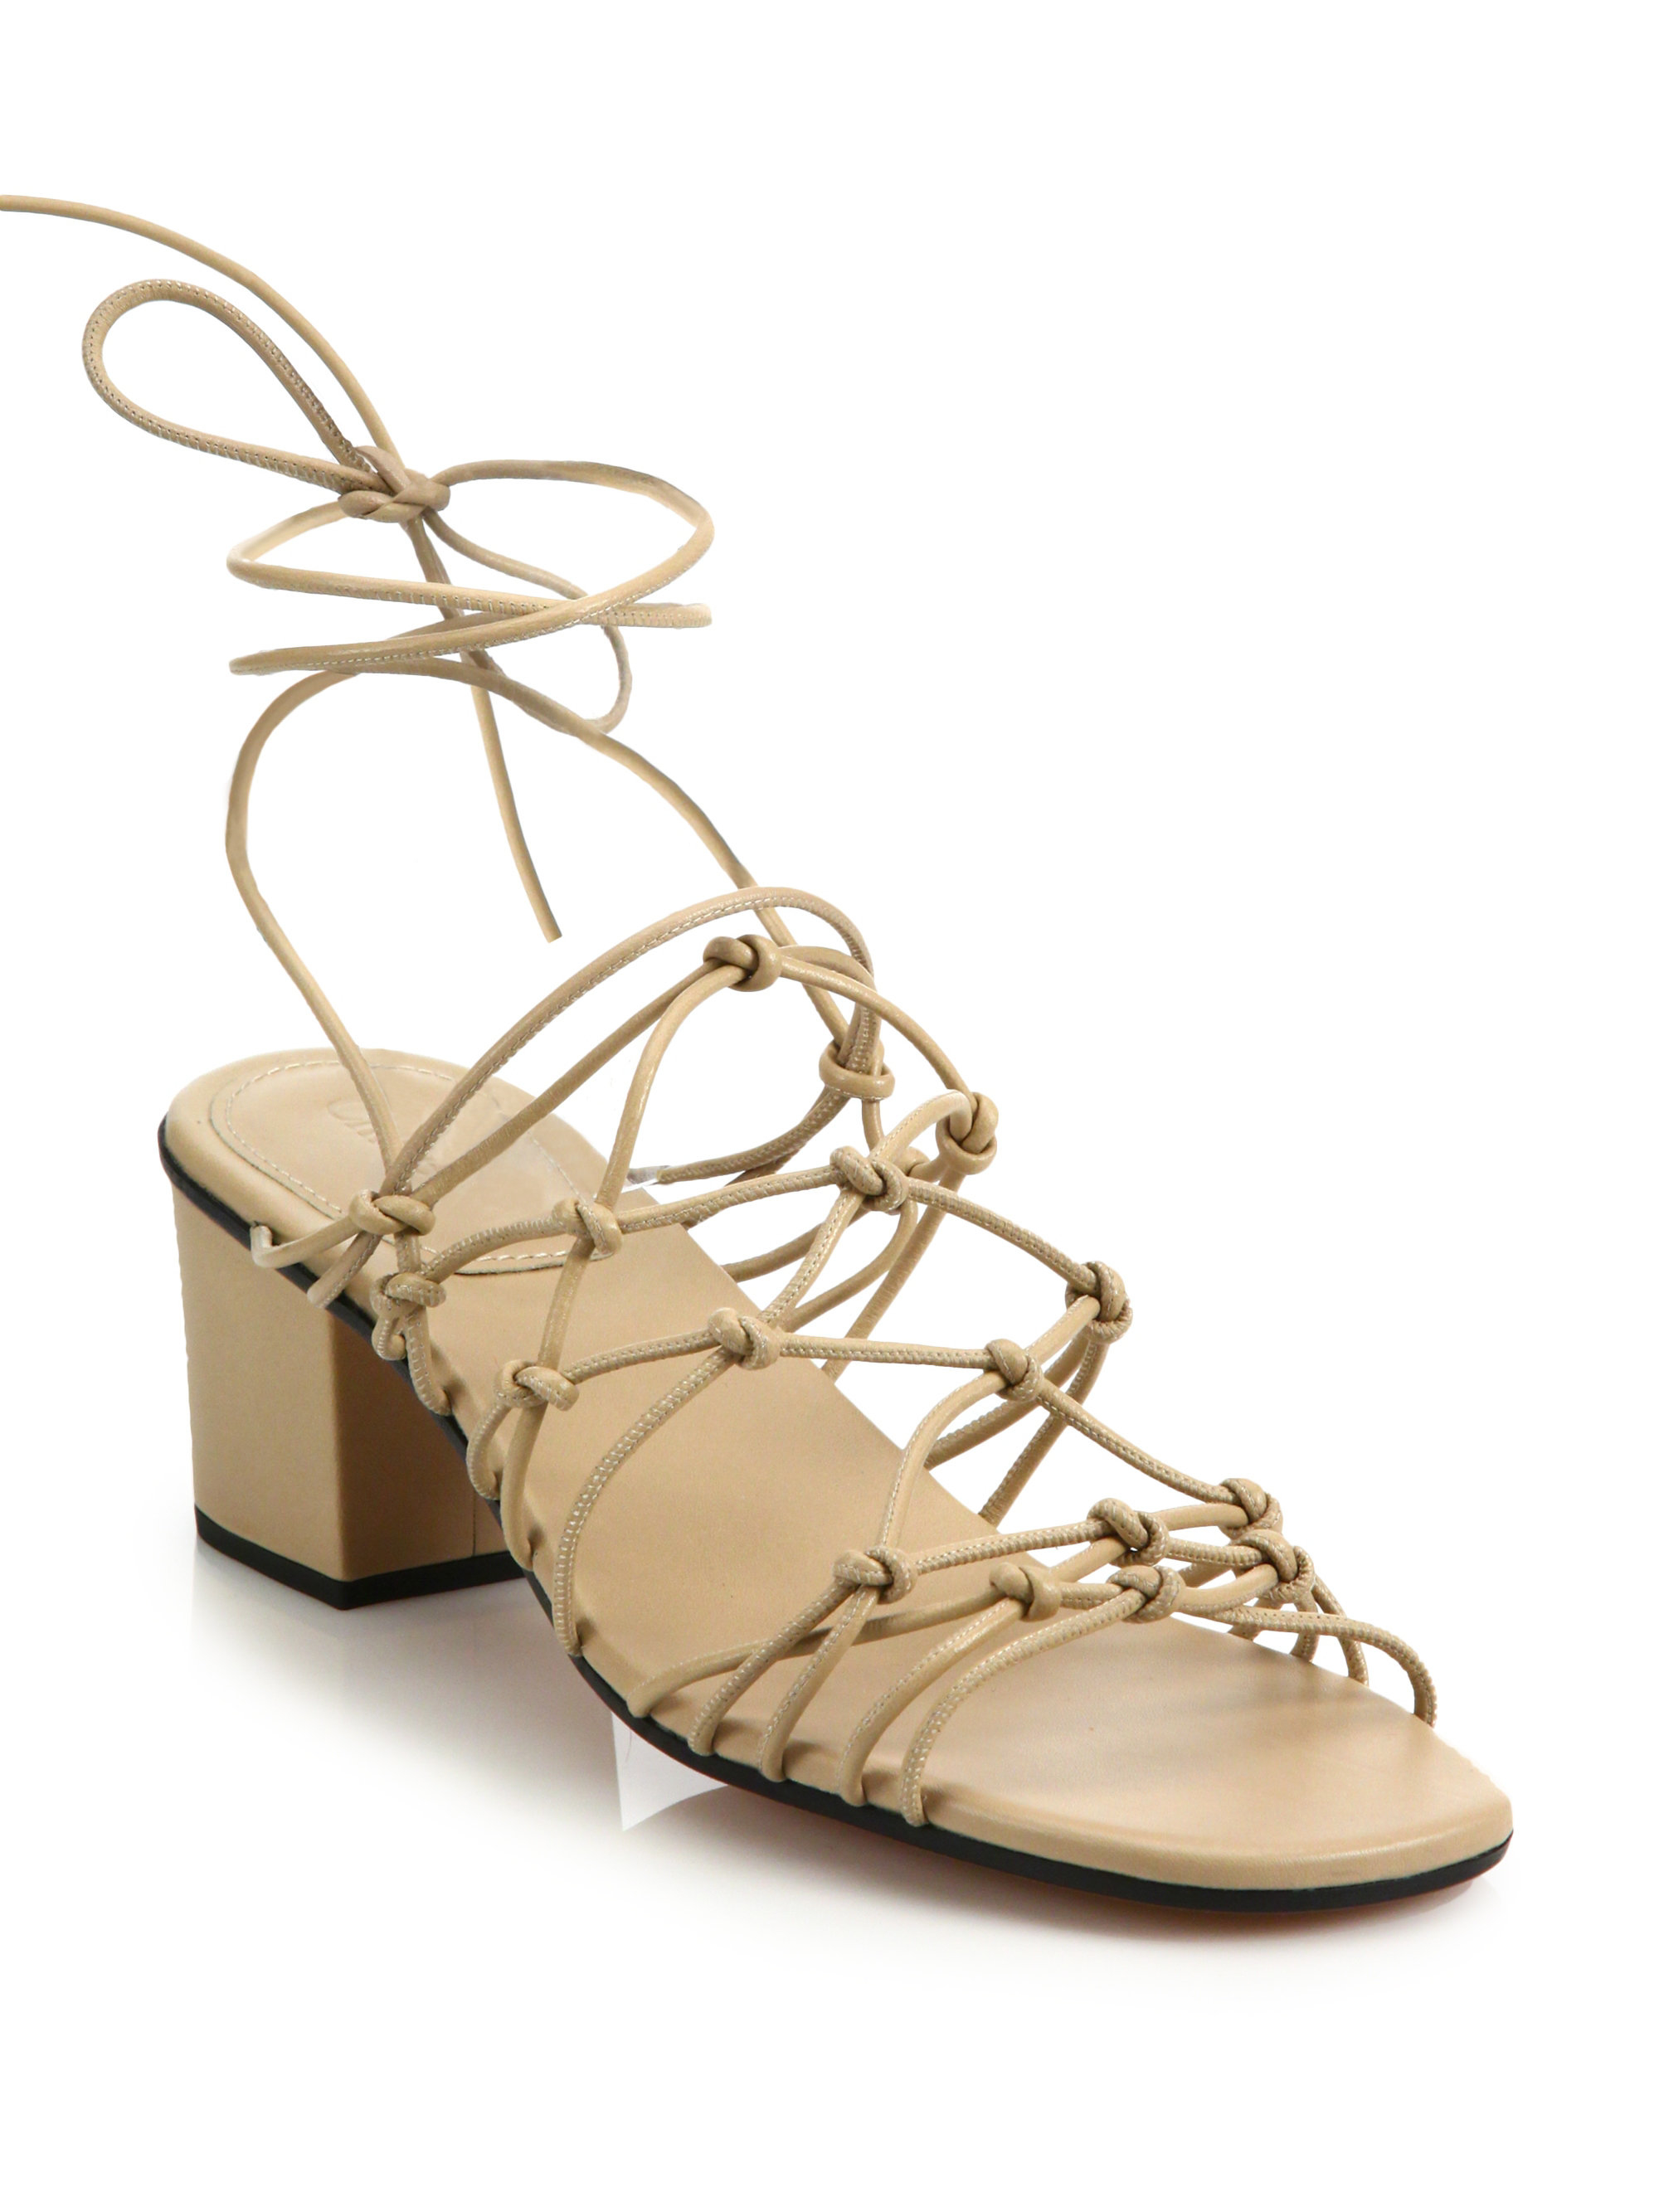 d7709fabdb5 Lyst - Chloé Knotted Leather Lace-up Block-heel Sandals in Natural